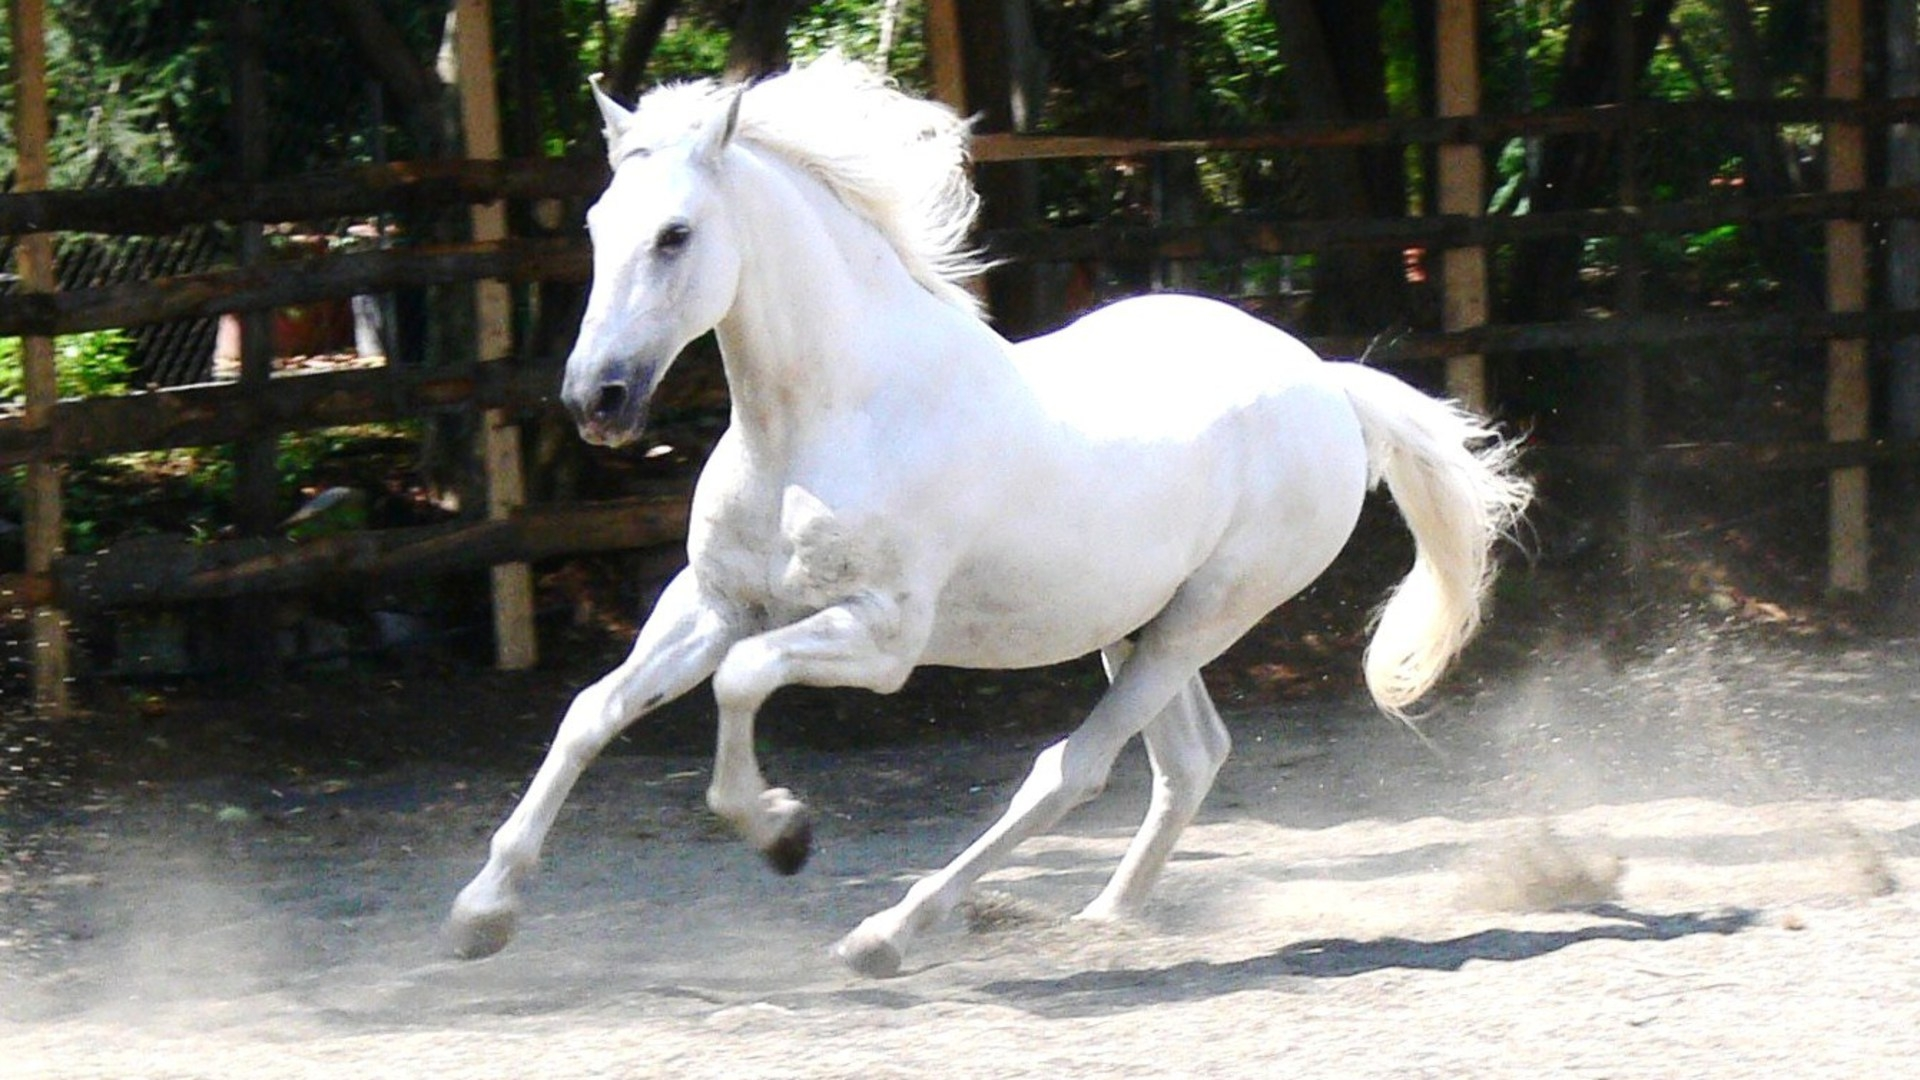 White horse pictures hd